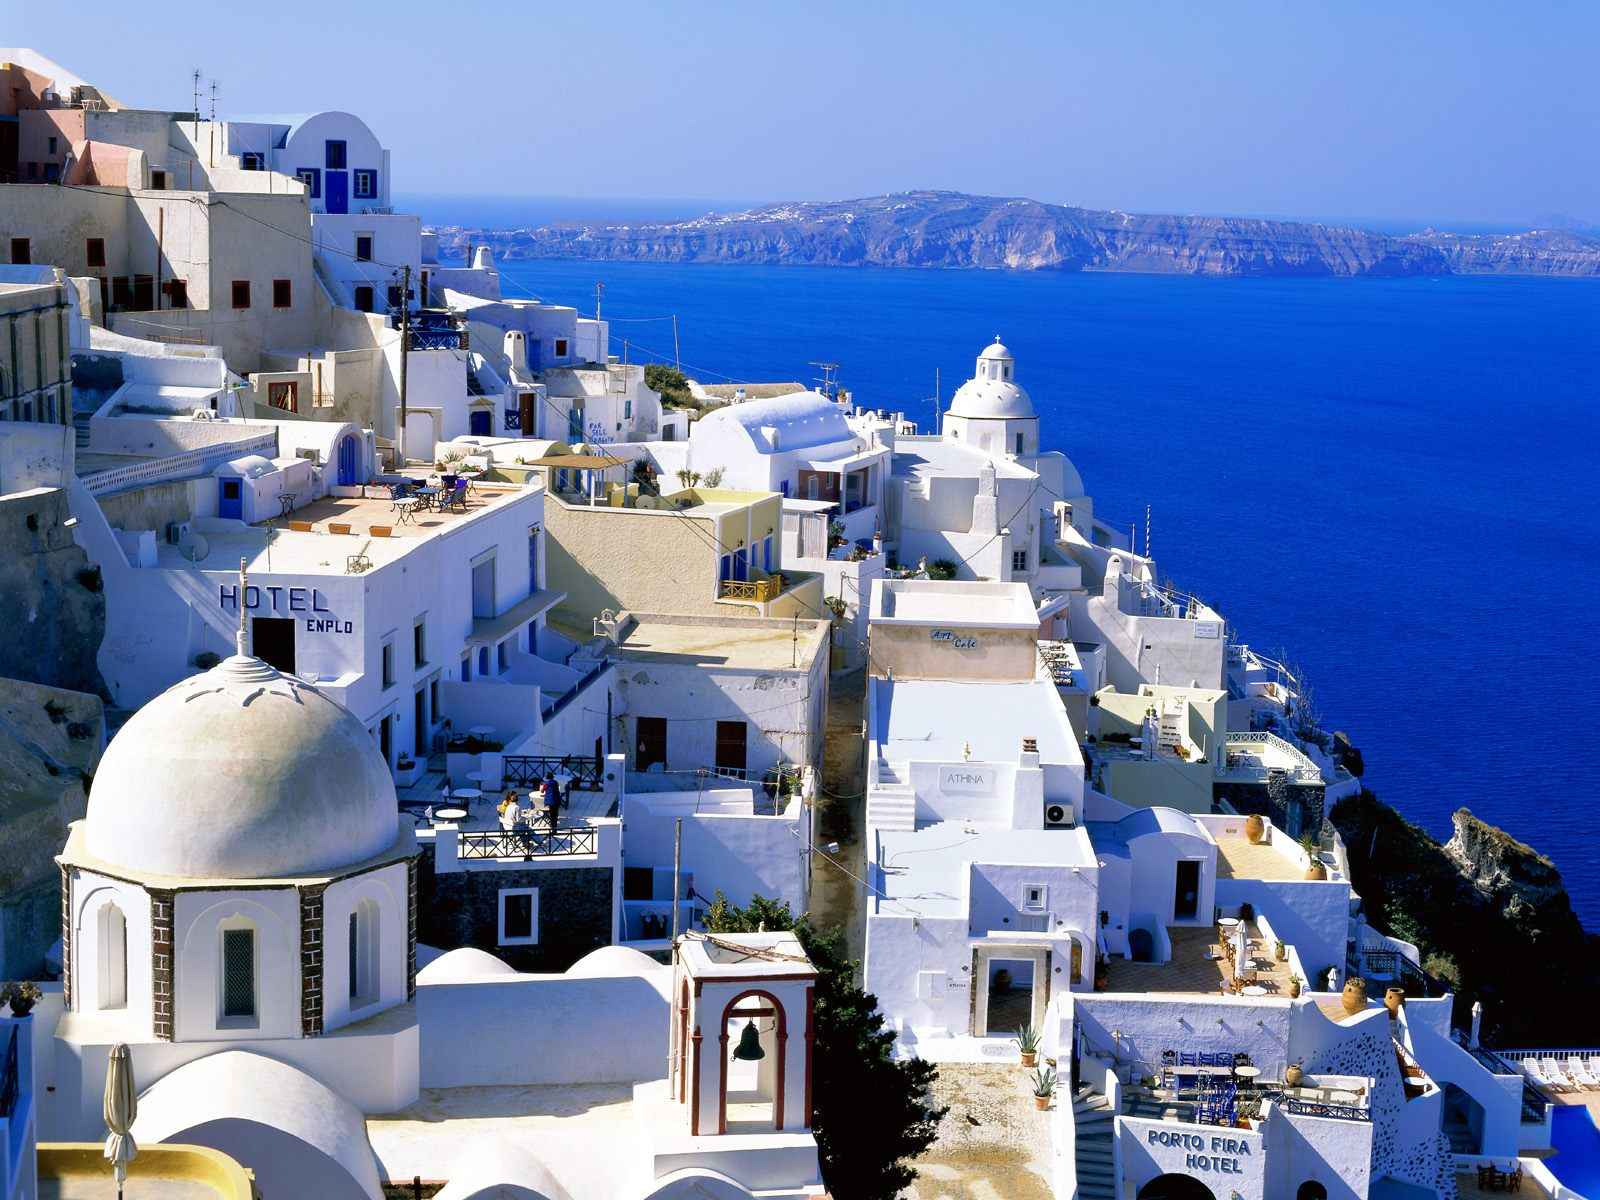 Download this Santorini Greece picture